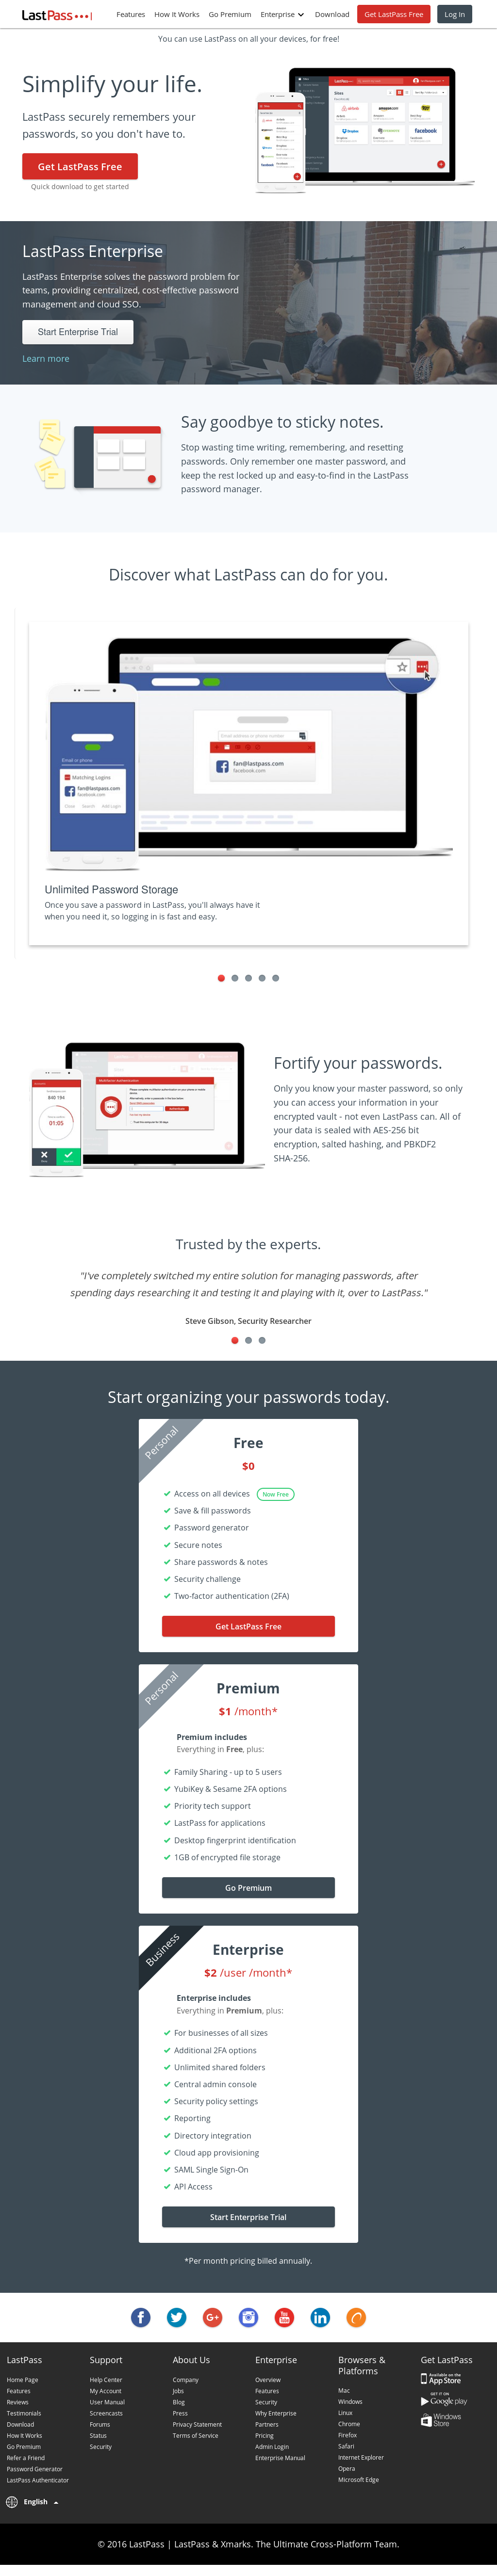 LastPass Competitors, Revenue and Employees - Owler Company Profile